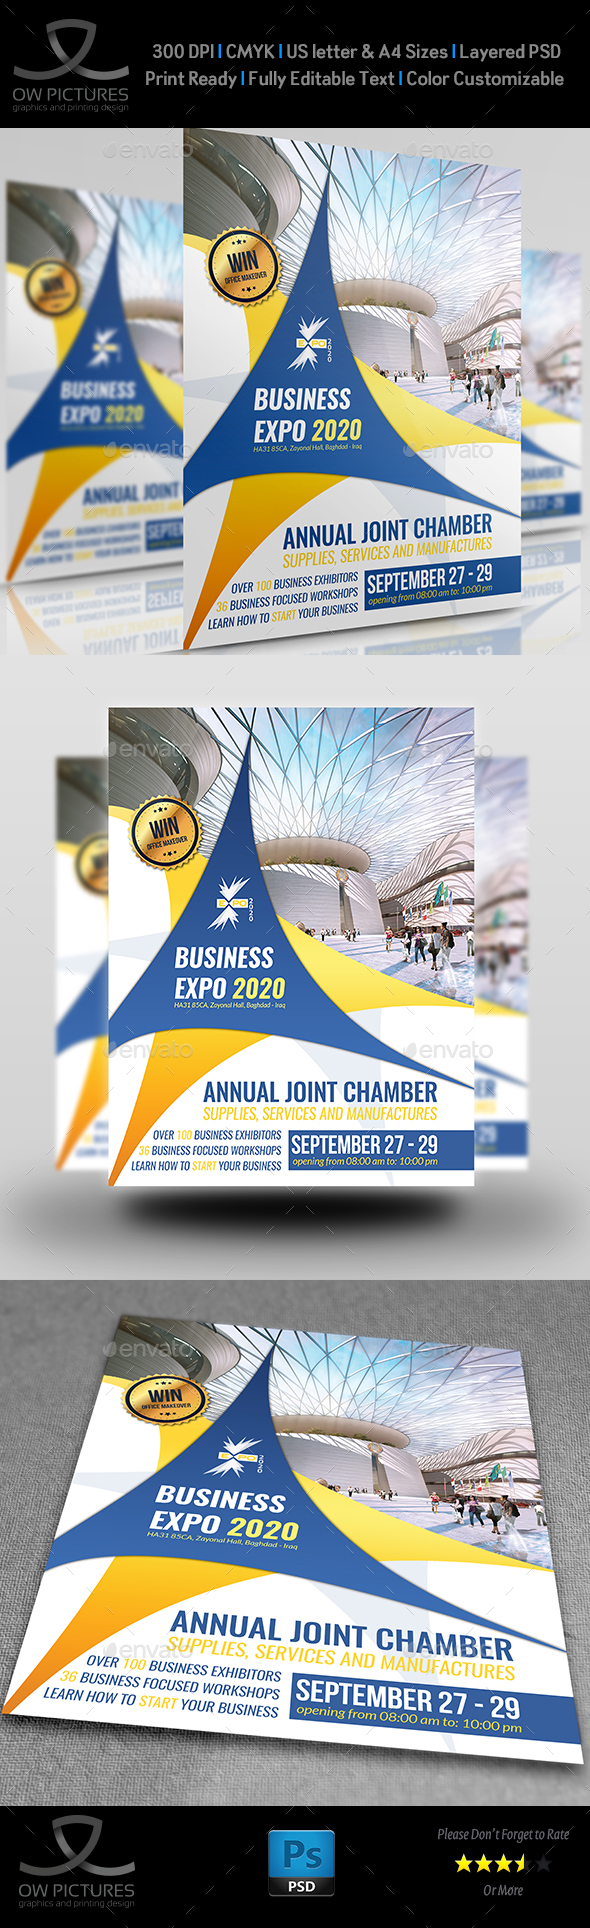 Business Expo Flyer Template - Flyers Print Templates